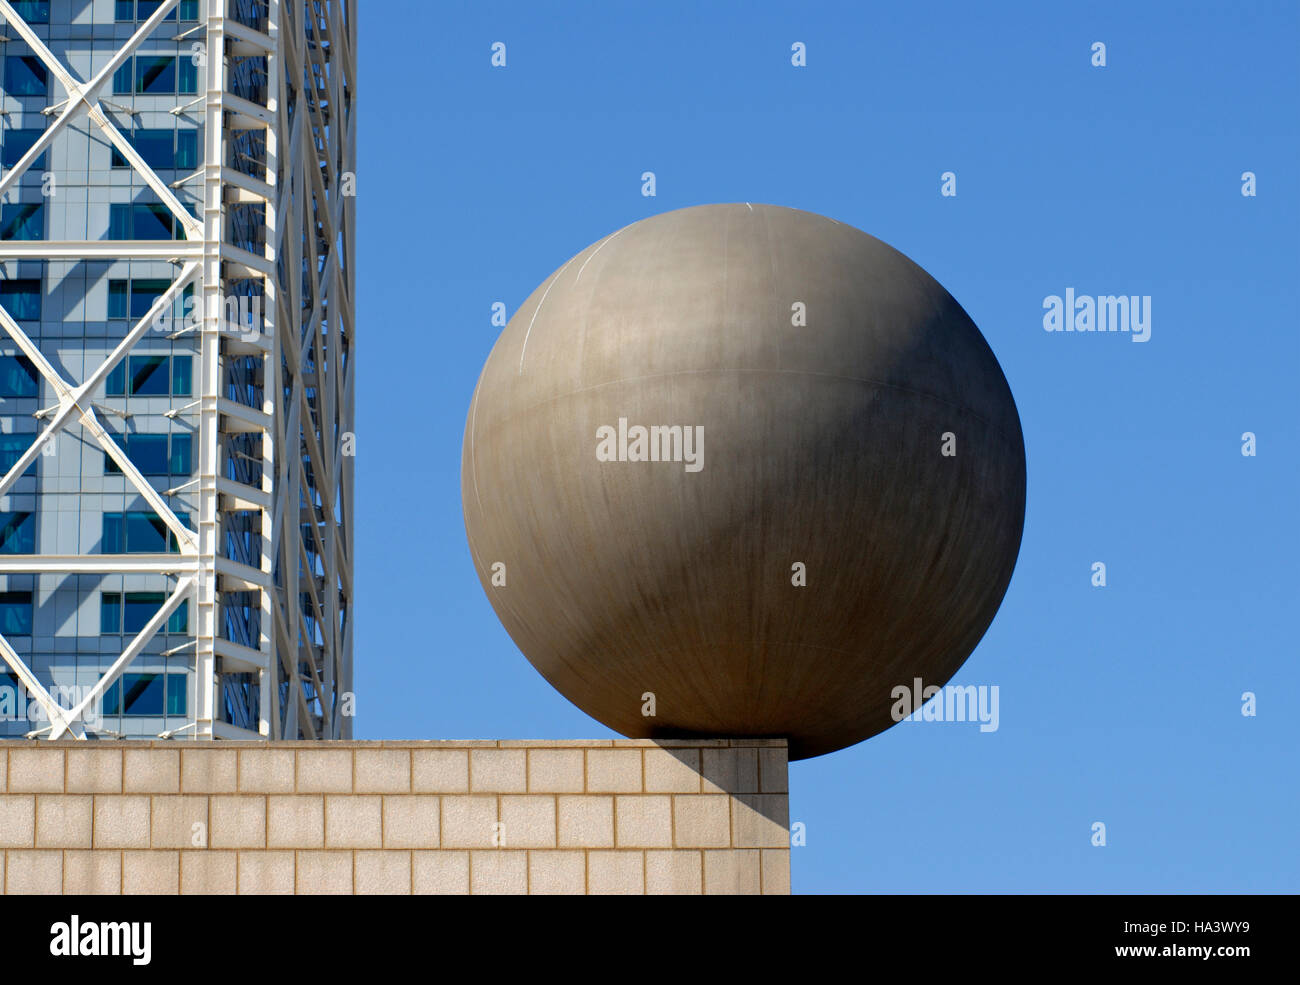 Frank Owen Gehry's Sphere (Esfera) sculpture at Port Olimpic, Barcelona's waterfront, Catalonia, Spain, - Stock Image